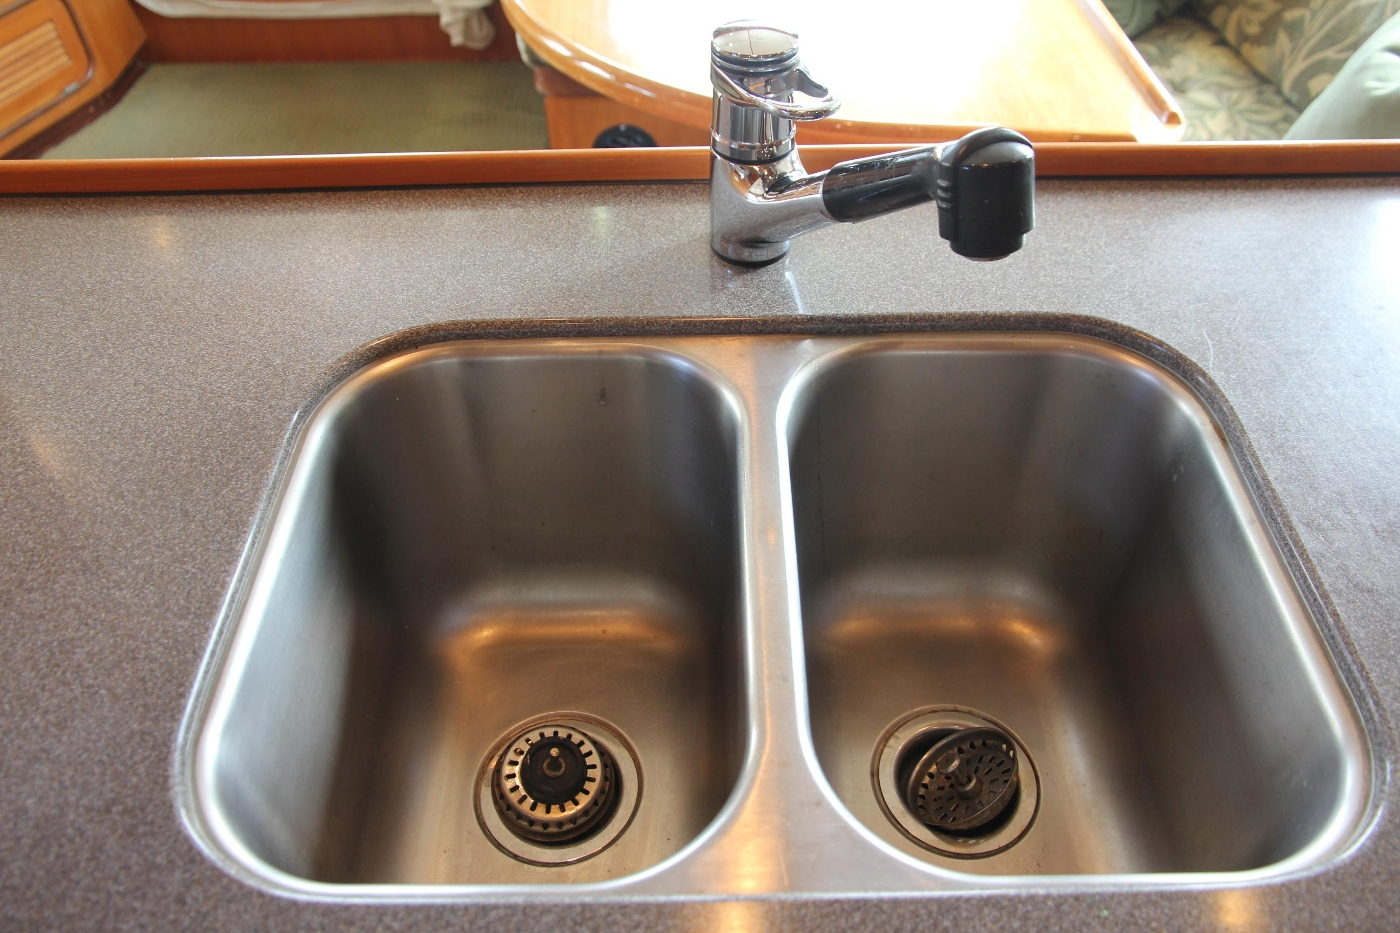 2000 Nordhavn Pilothouse, Double Stainless Sink